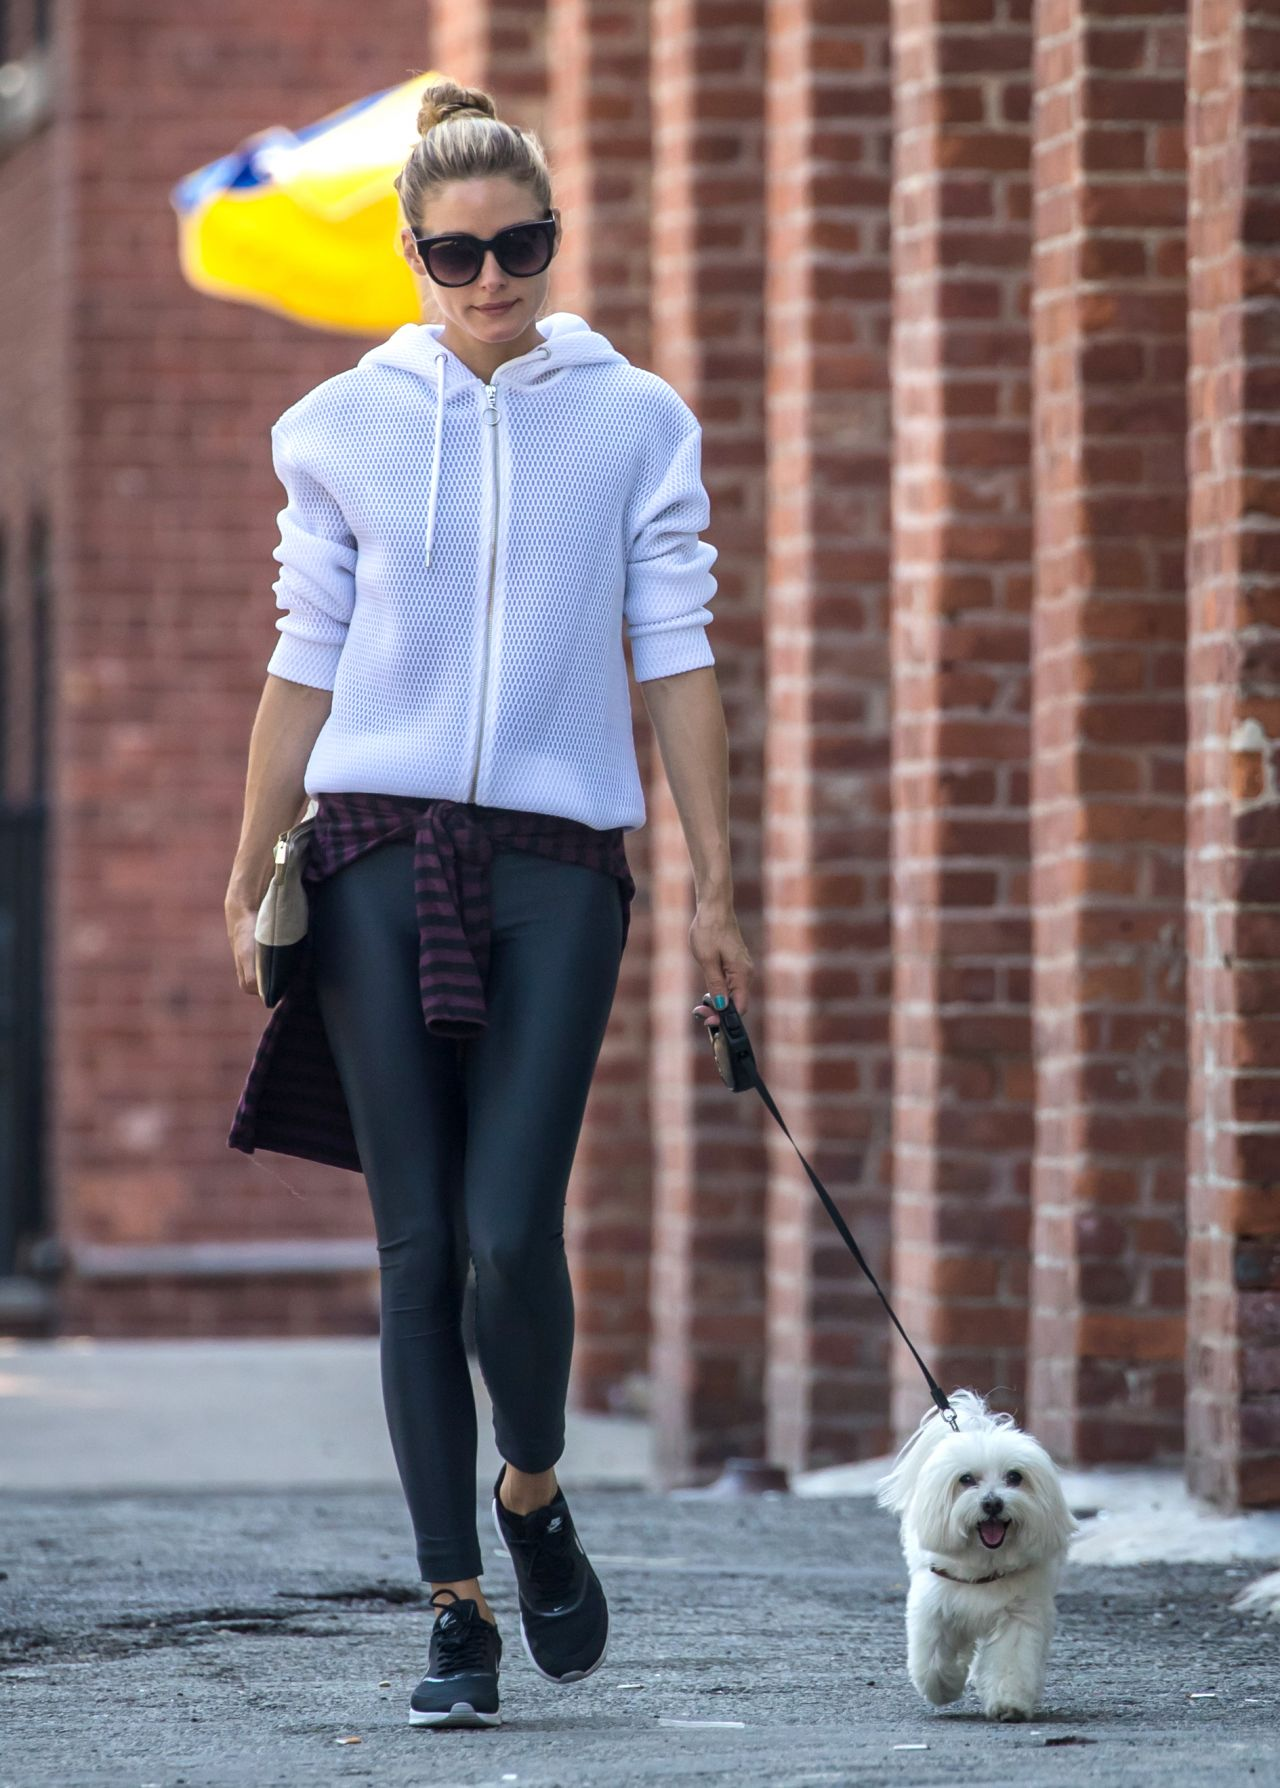 olivia-palermo-walking-her-dog-in-brooklyn-new-york-city-7-18-2016-6